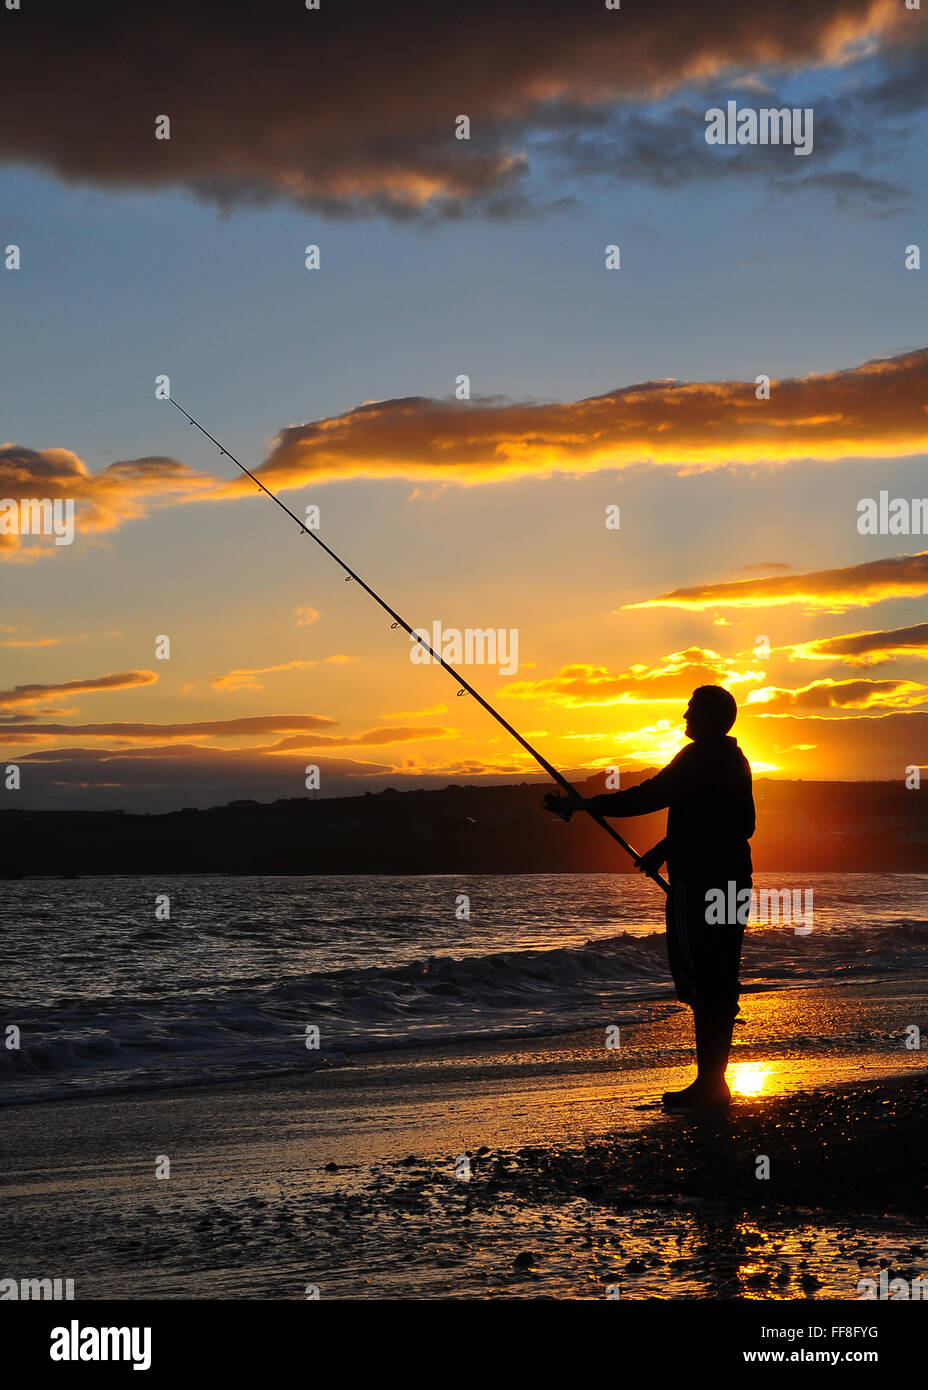 ocean-fisherman-waits-for-a-catch-as-the